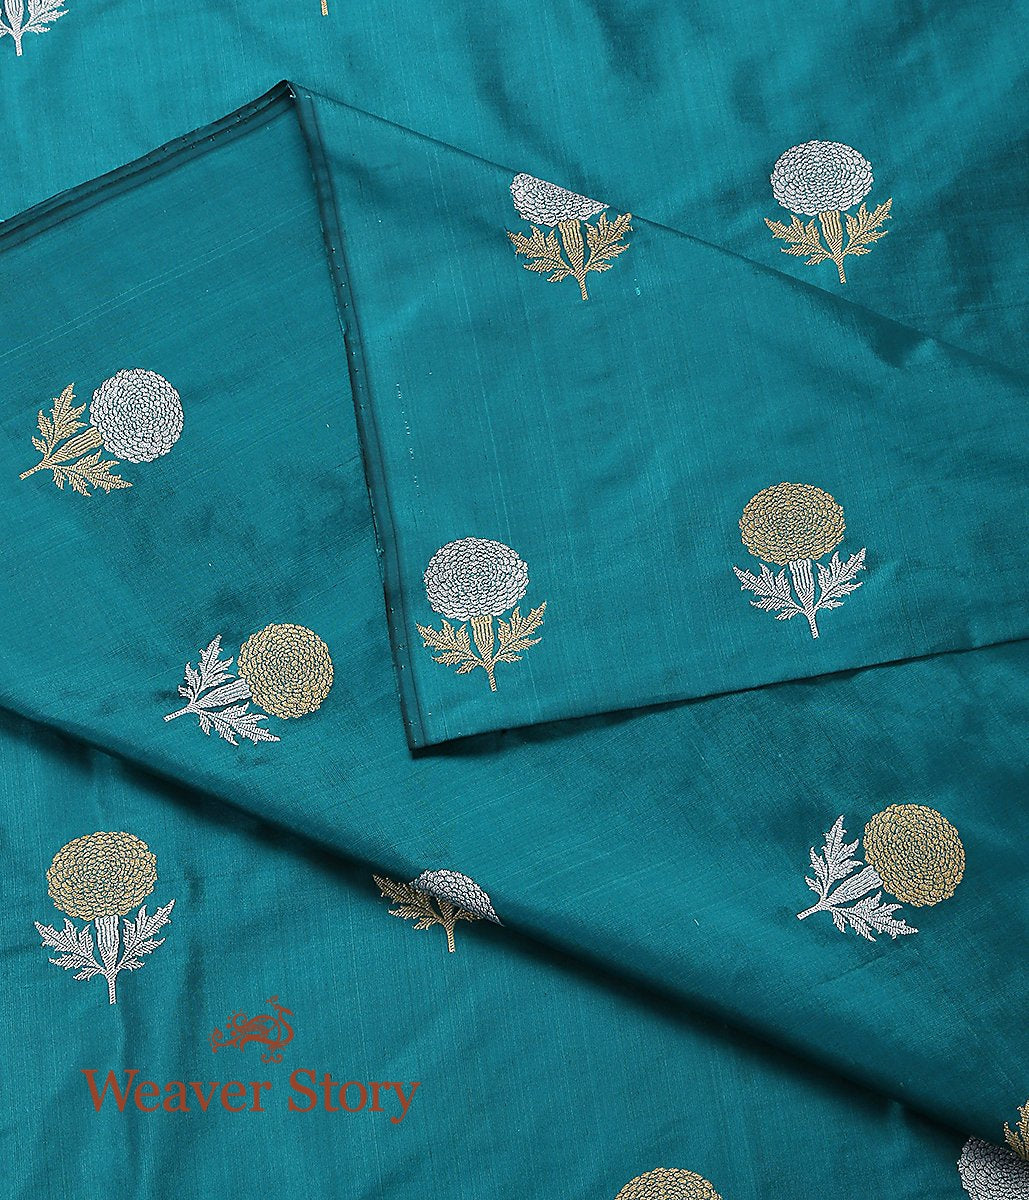 Handwoven Teal Green Guldaudi Booti Fabric